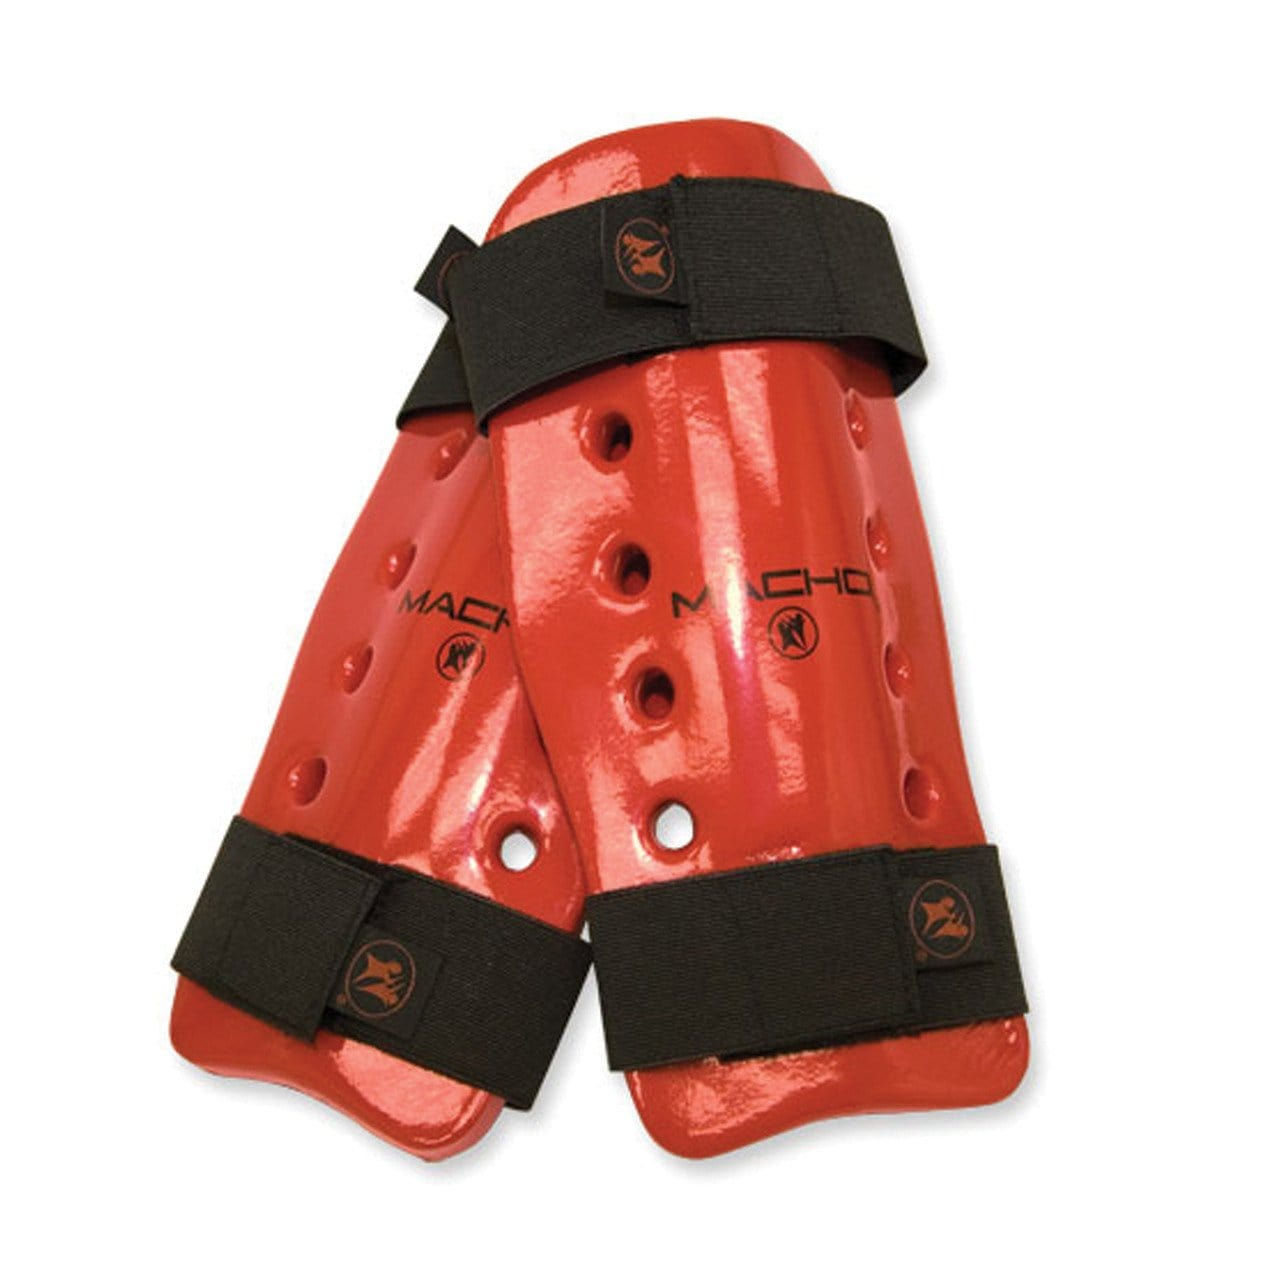 red Macho Dyna Karate sparring Shin guards